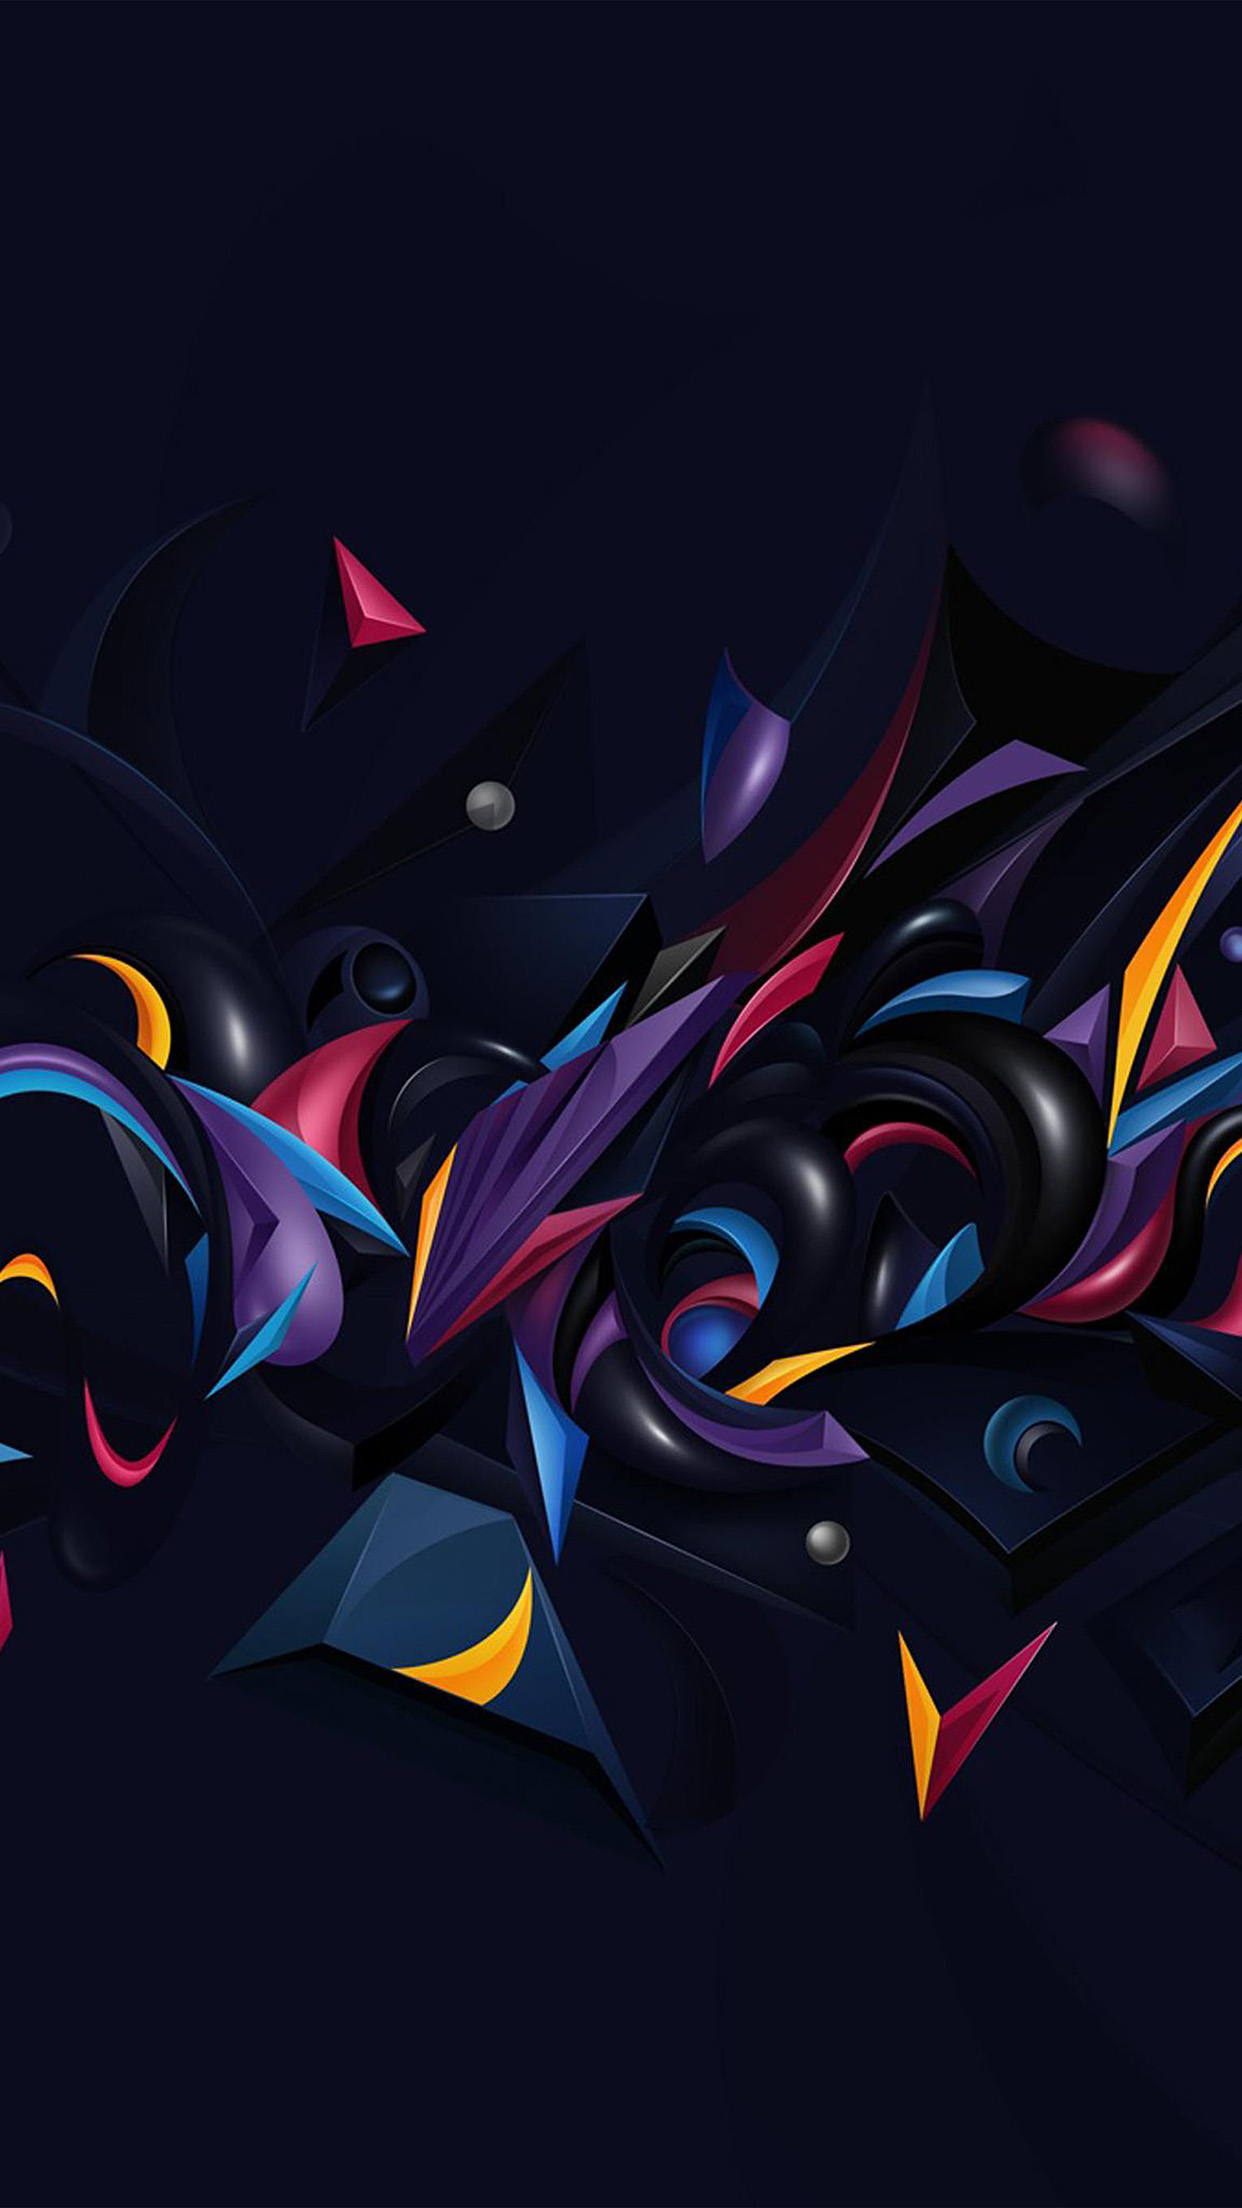 Unduh 200 Wallpaper Abstrak Hd For Android HD Gratis